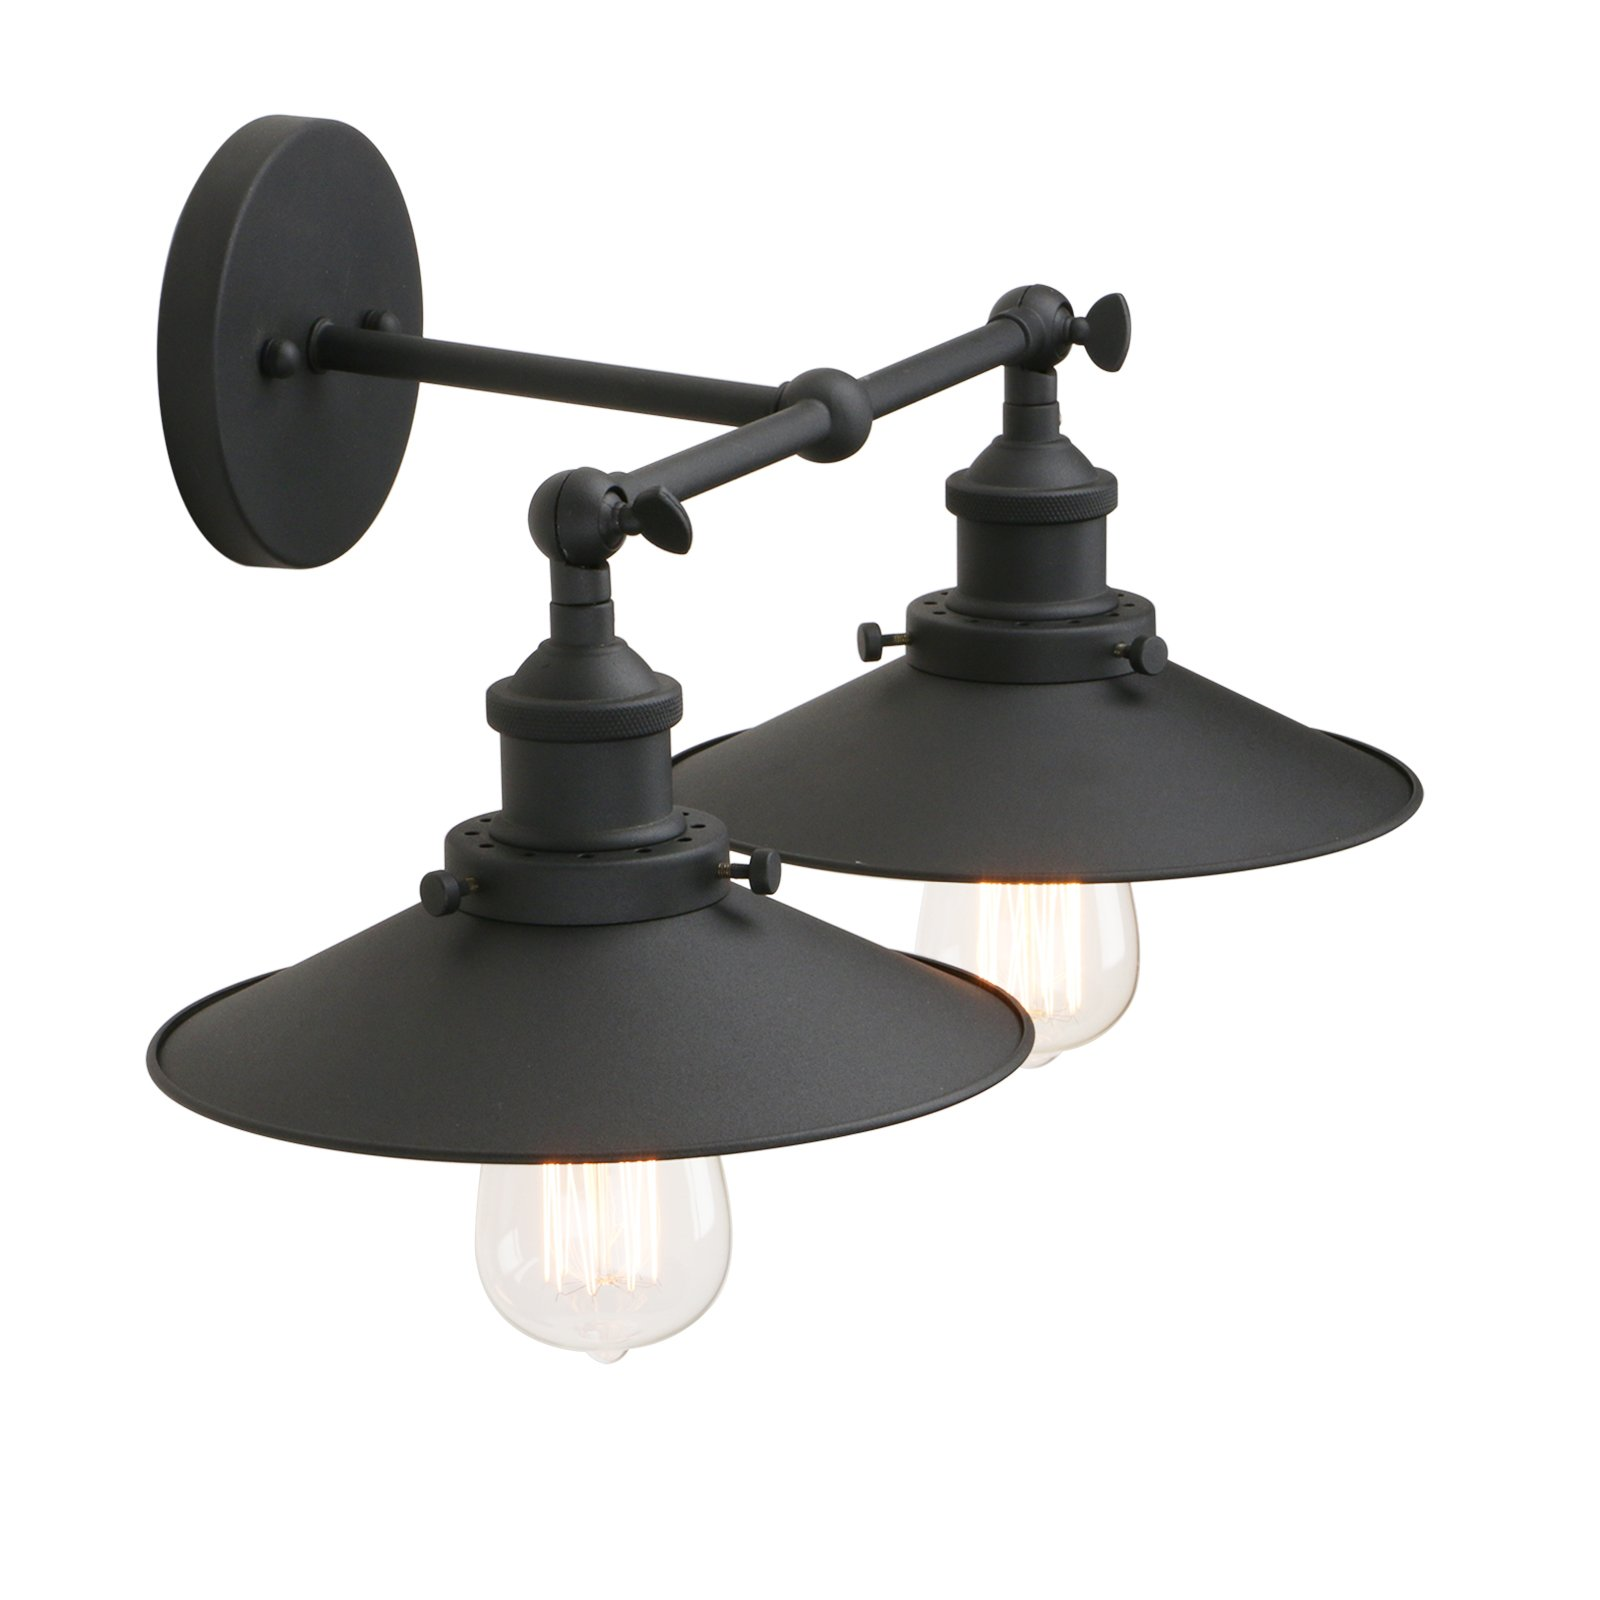 Pathson Industrial Wall Sconce with Vintage Style, 2-Light Bathroom Light Fixtures, Mid Century Lamps for Living Room, Brushed Antique Finished (Black) by Pathson